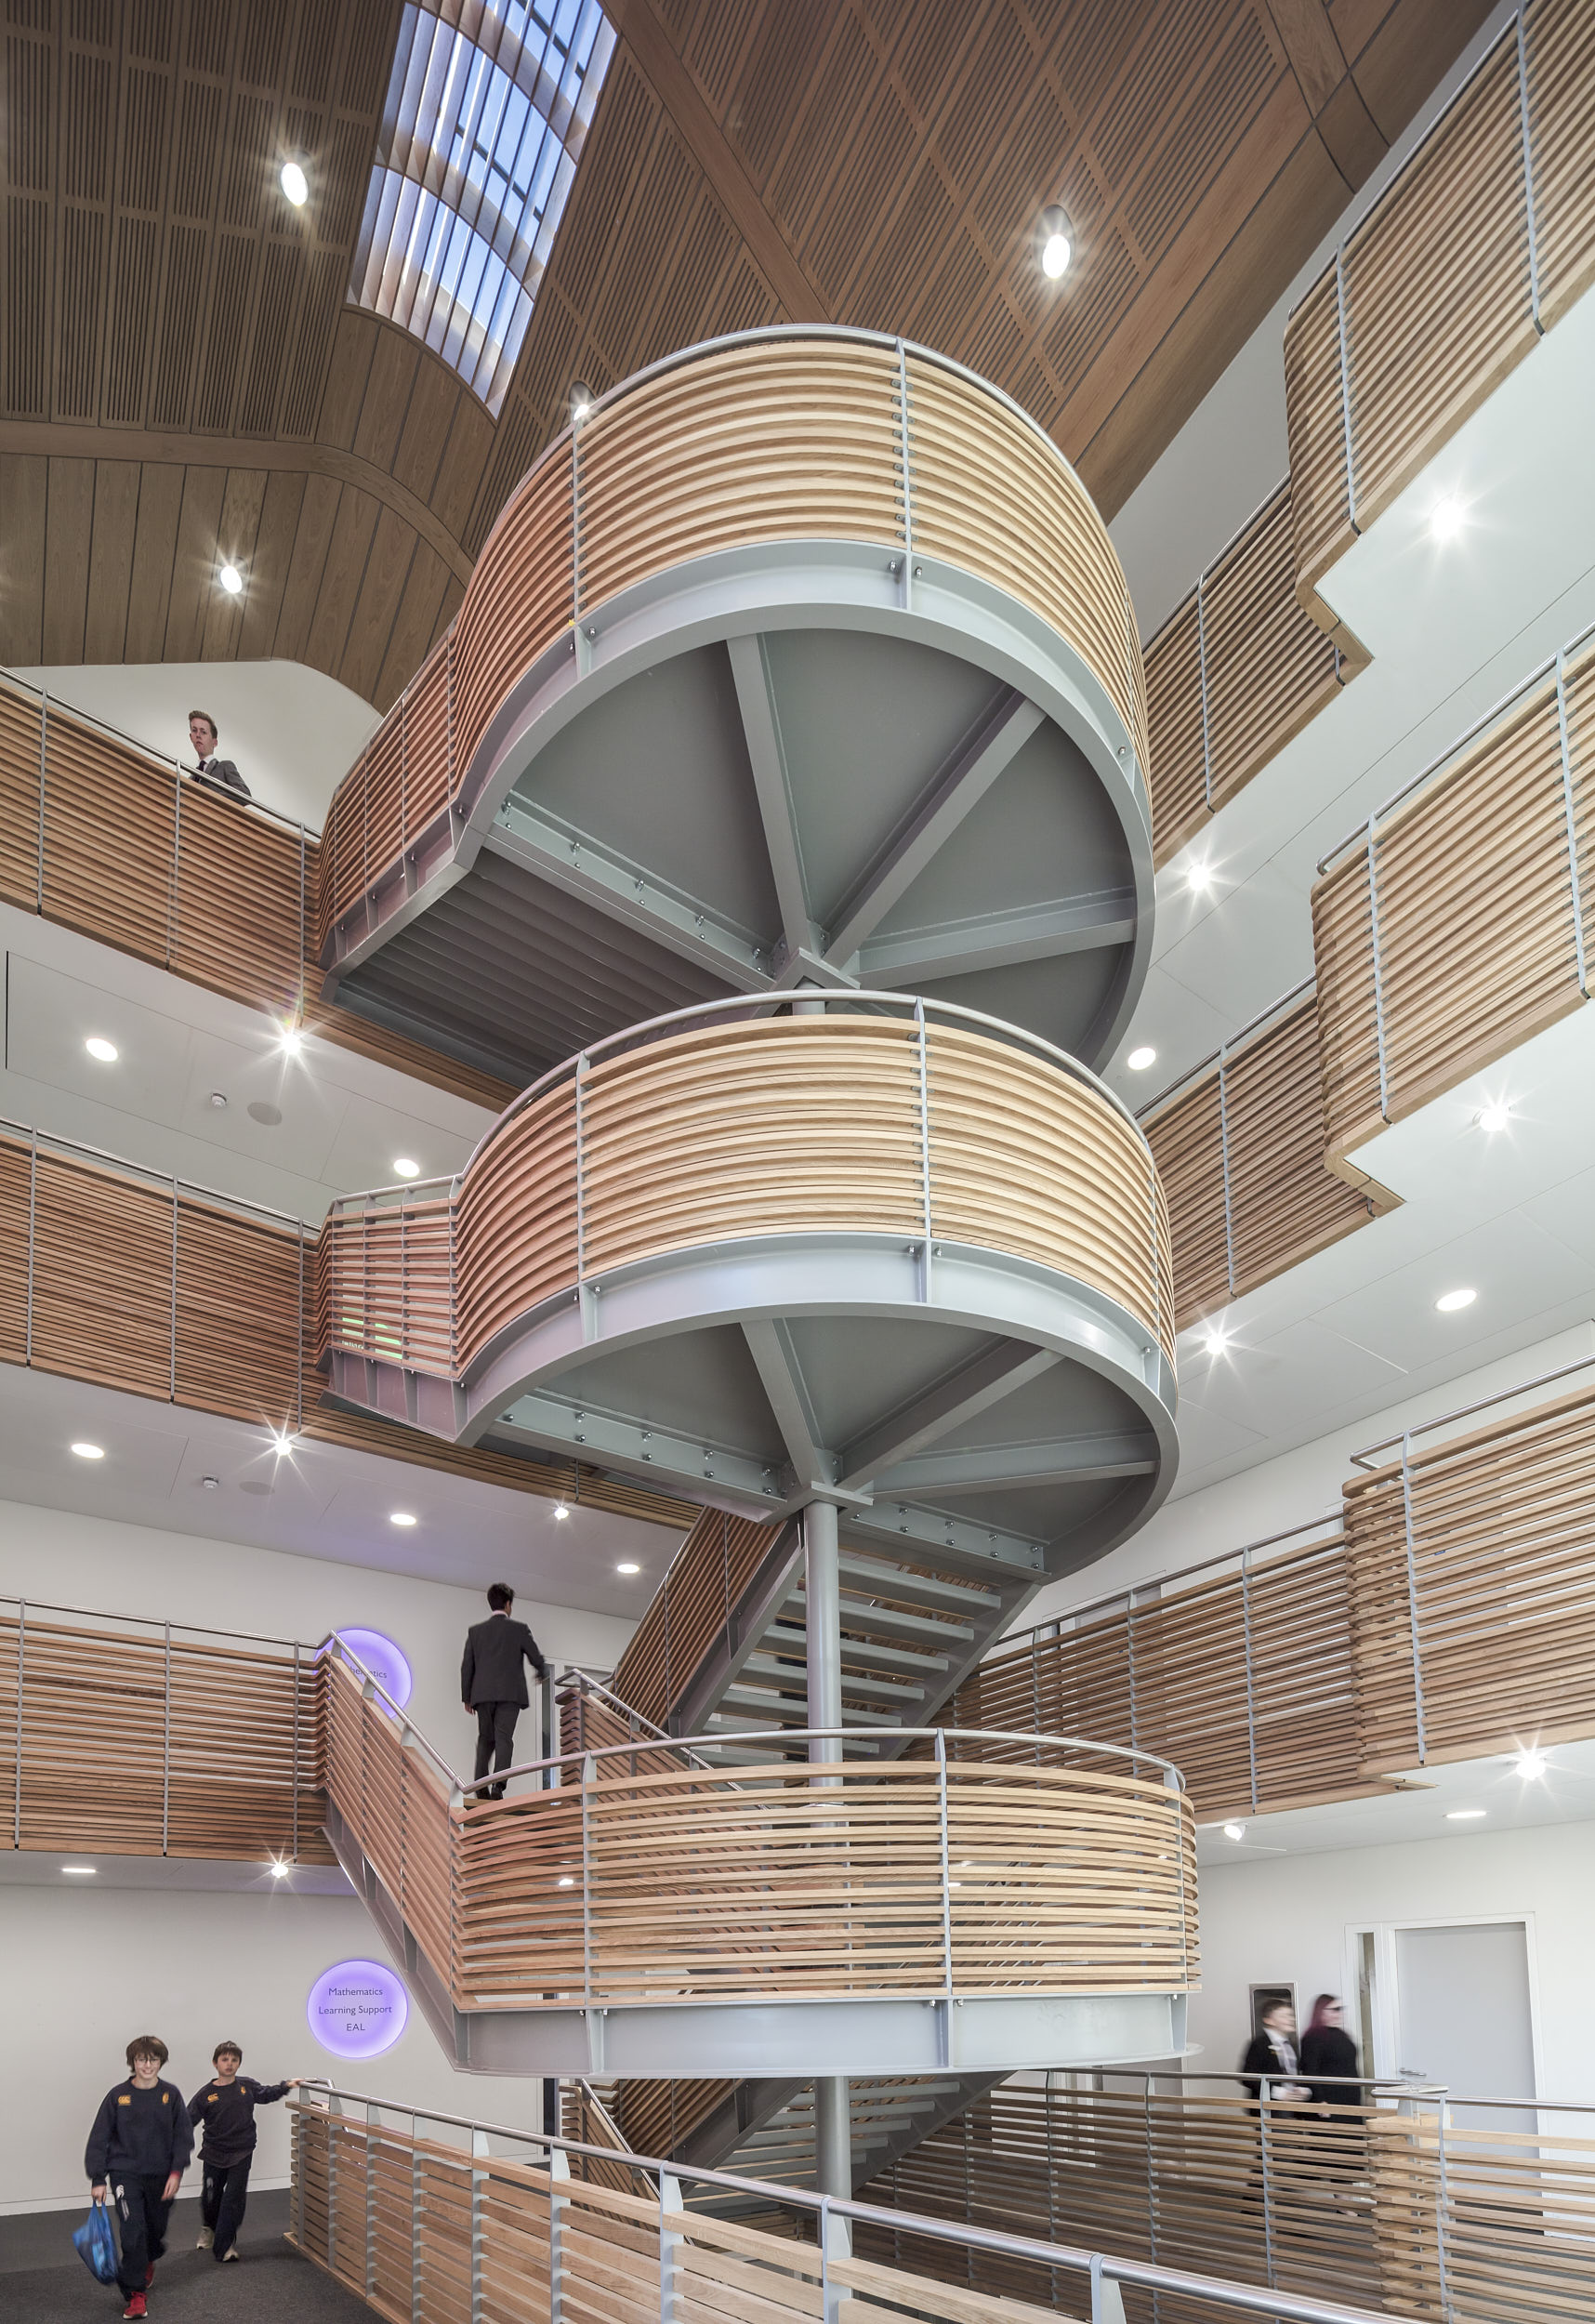 Interior staircase view.